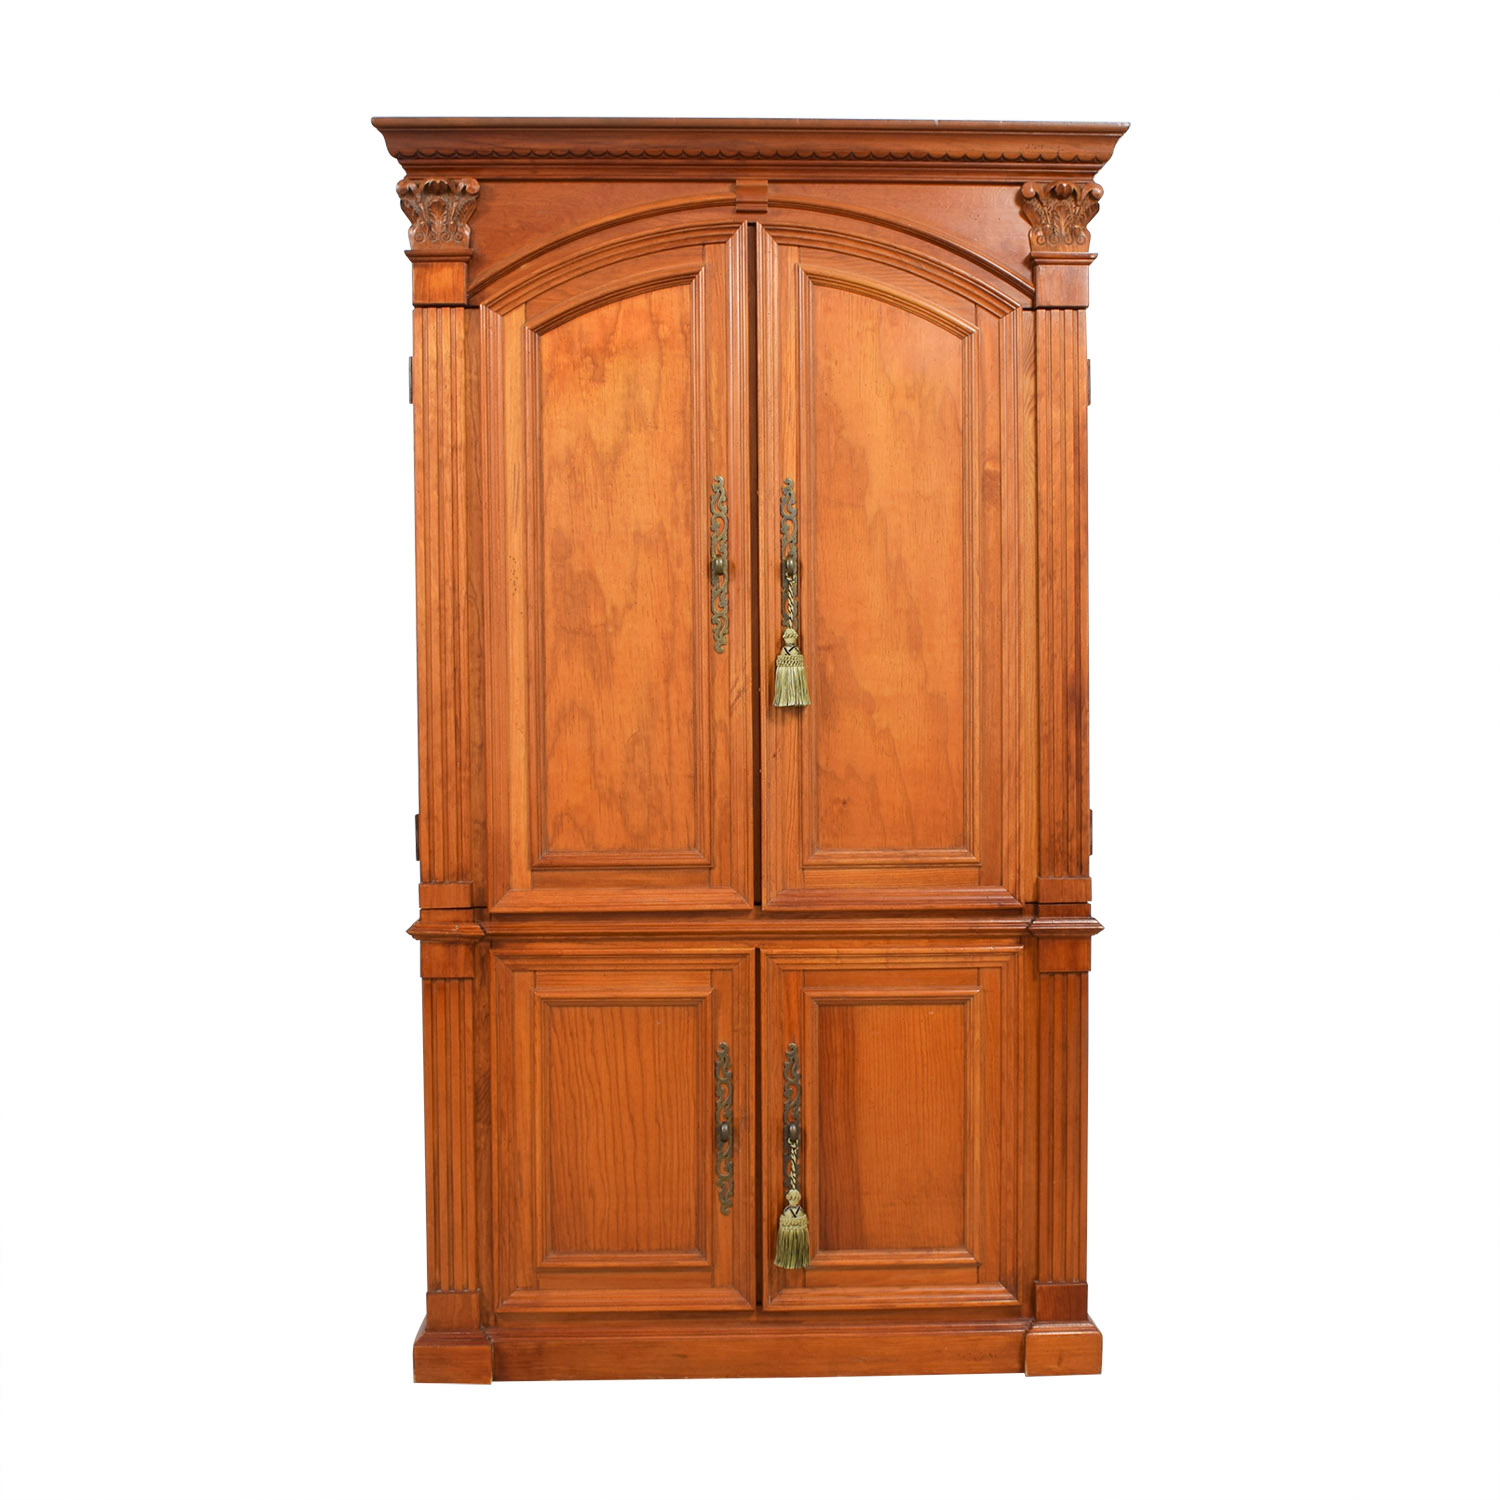 Hamilton Heritage Hamilton Heritage Entertainment Armoire for sale